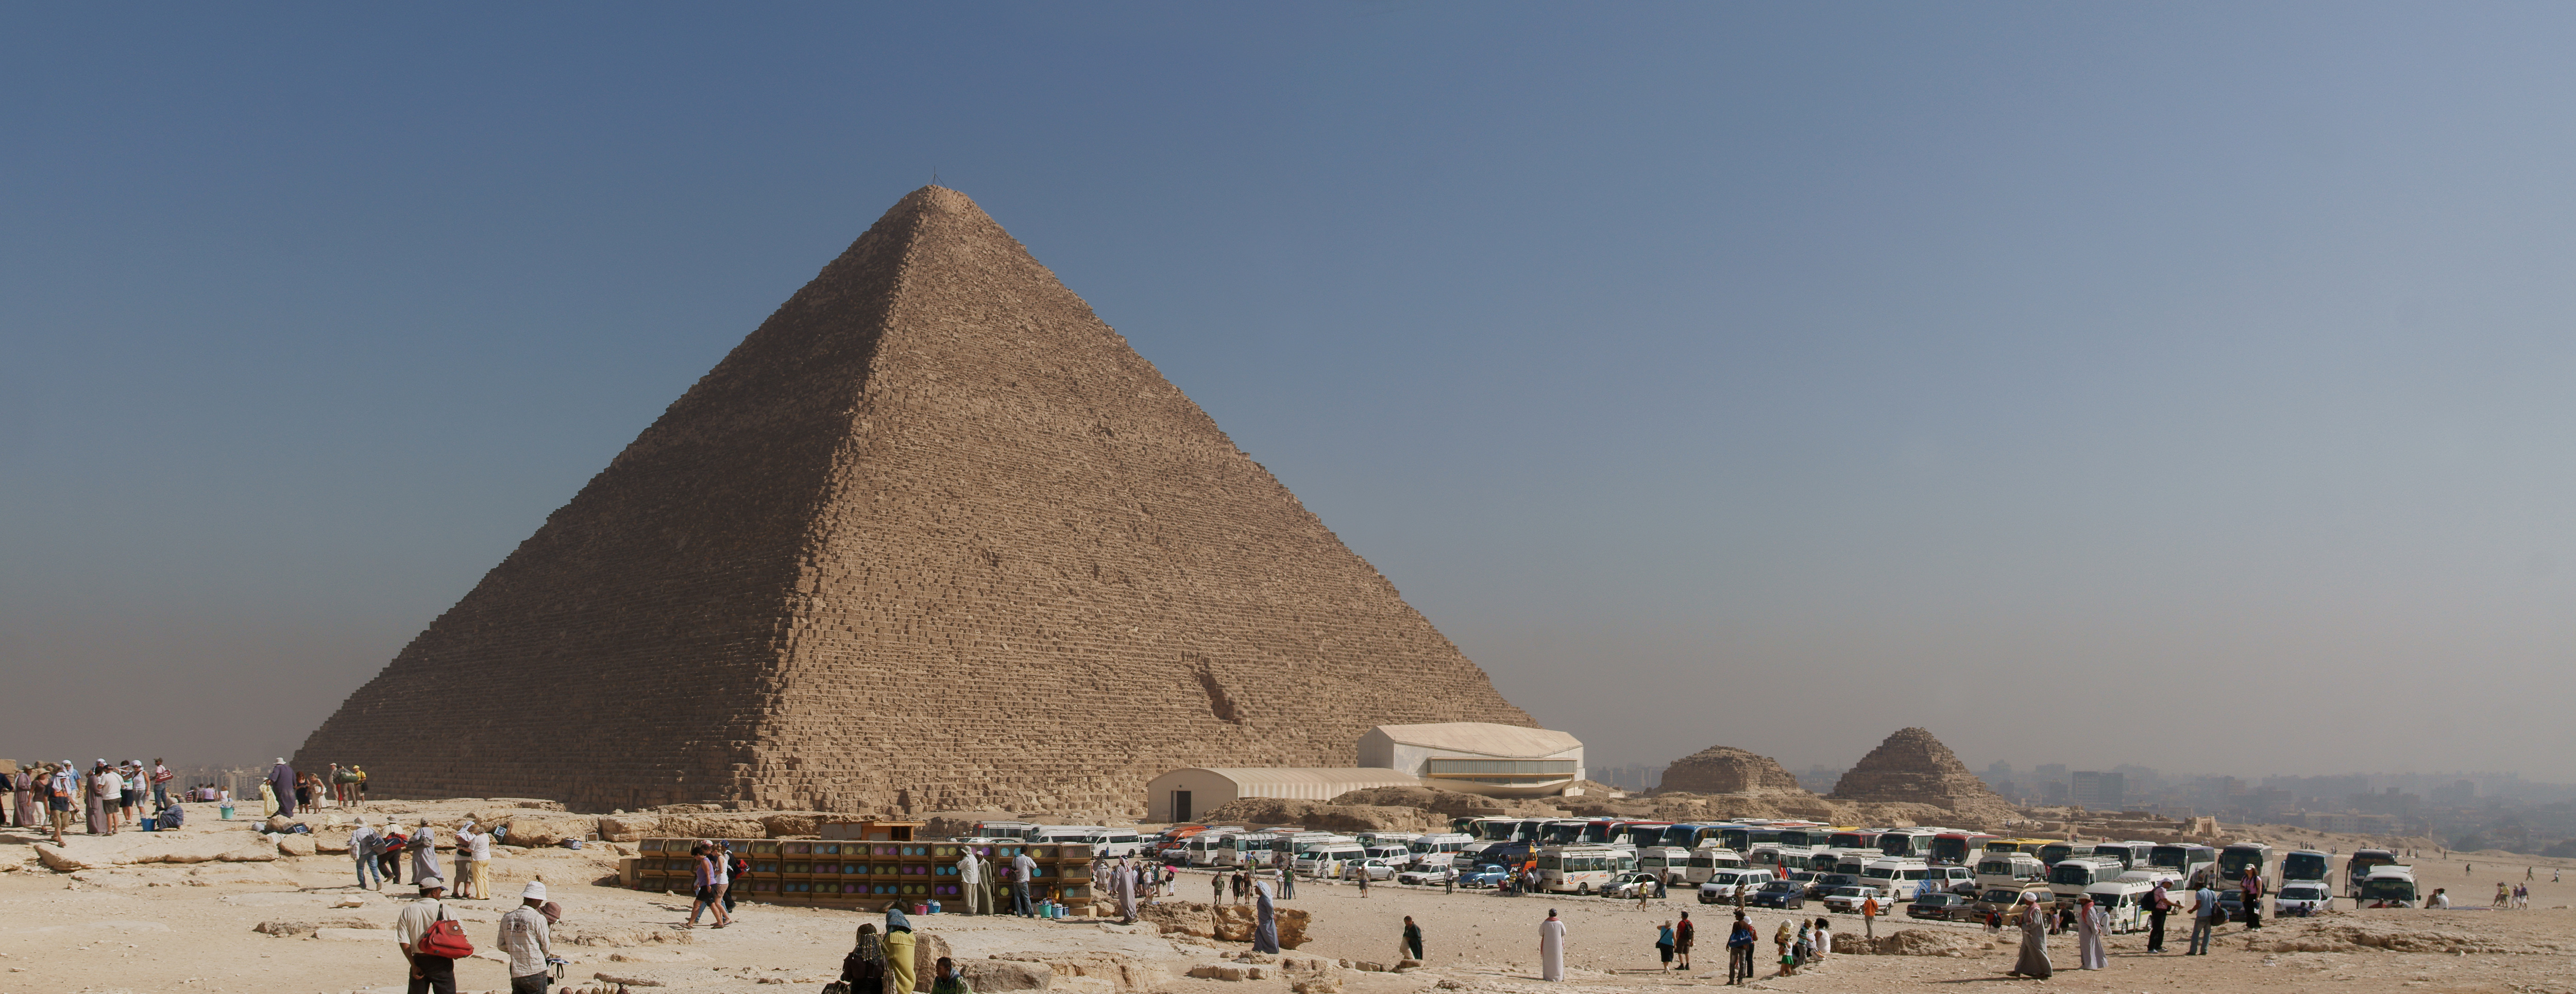 discuss the life and work of famous ancient egypt